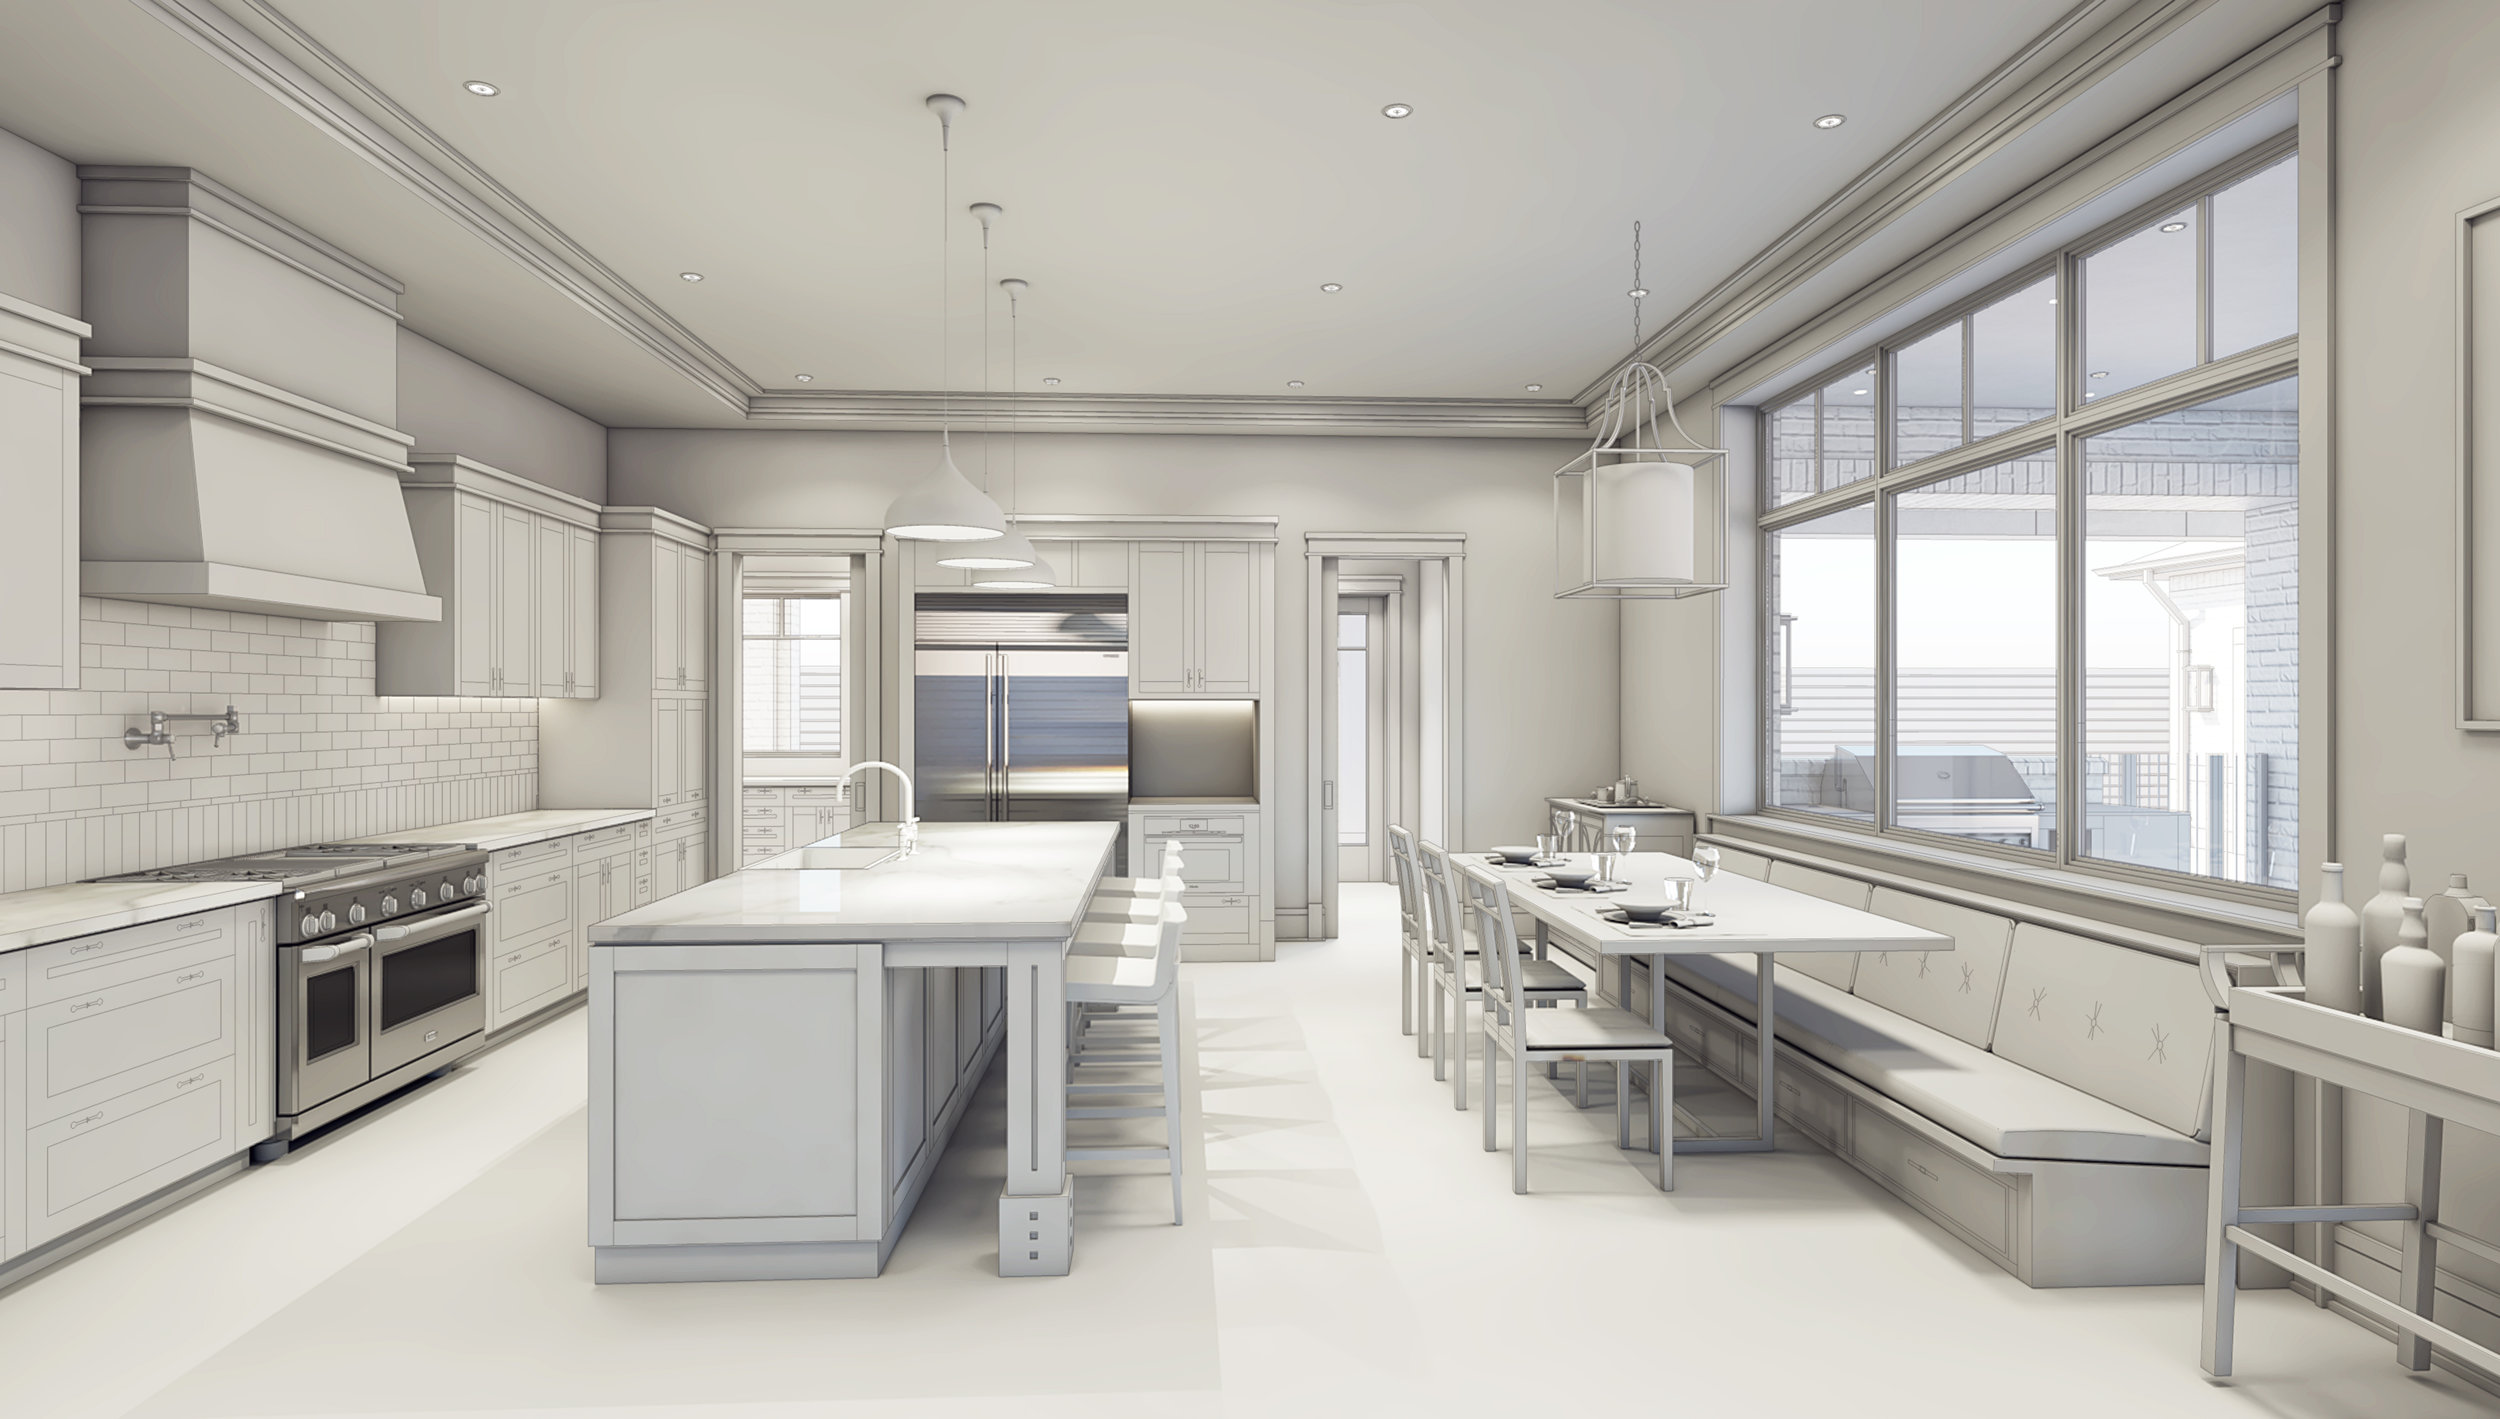 CHASE KITCHEN AND BREAKFAST copy.jpg